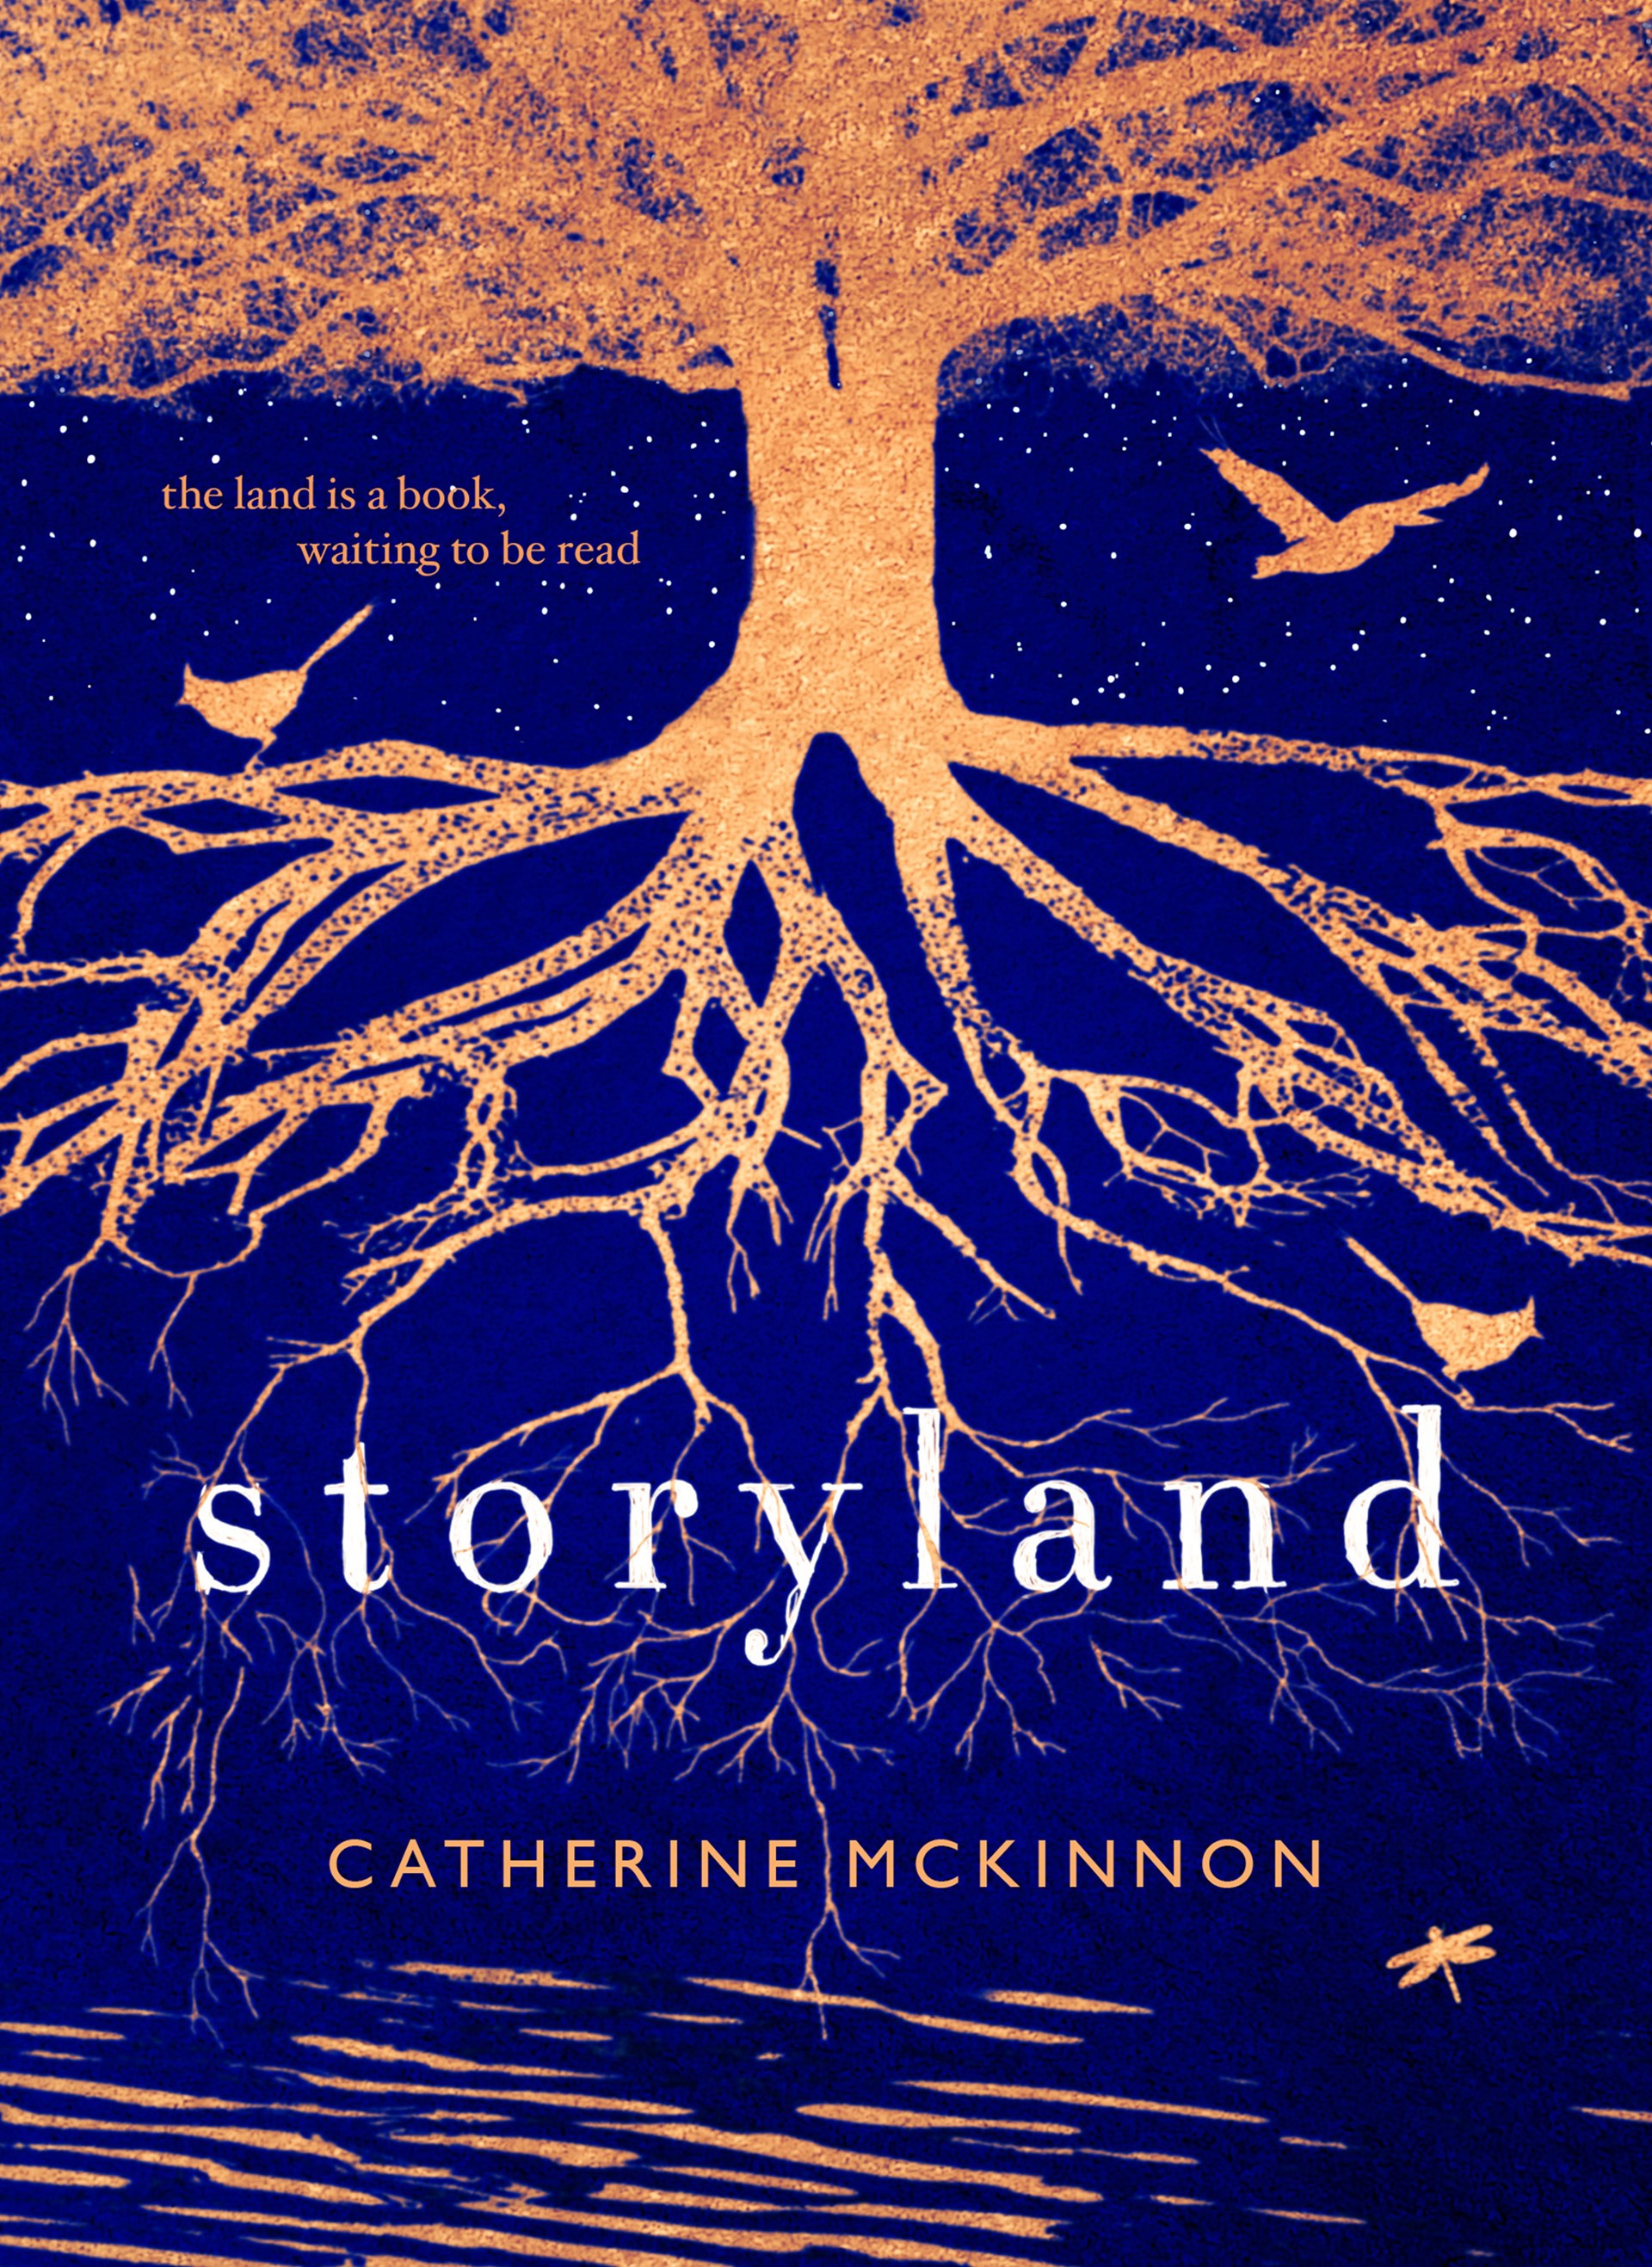 An Evening with Catherine McKinnon